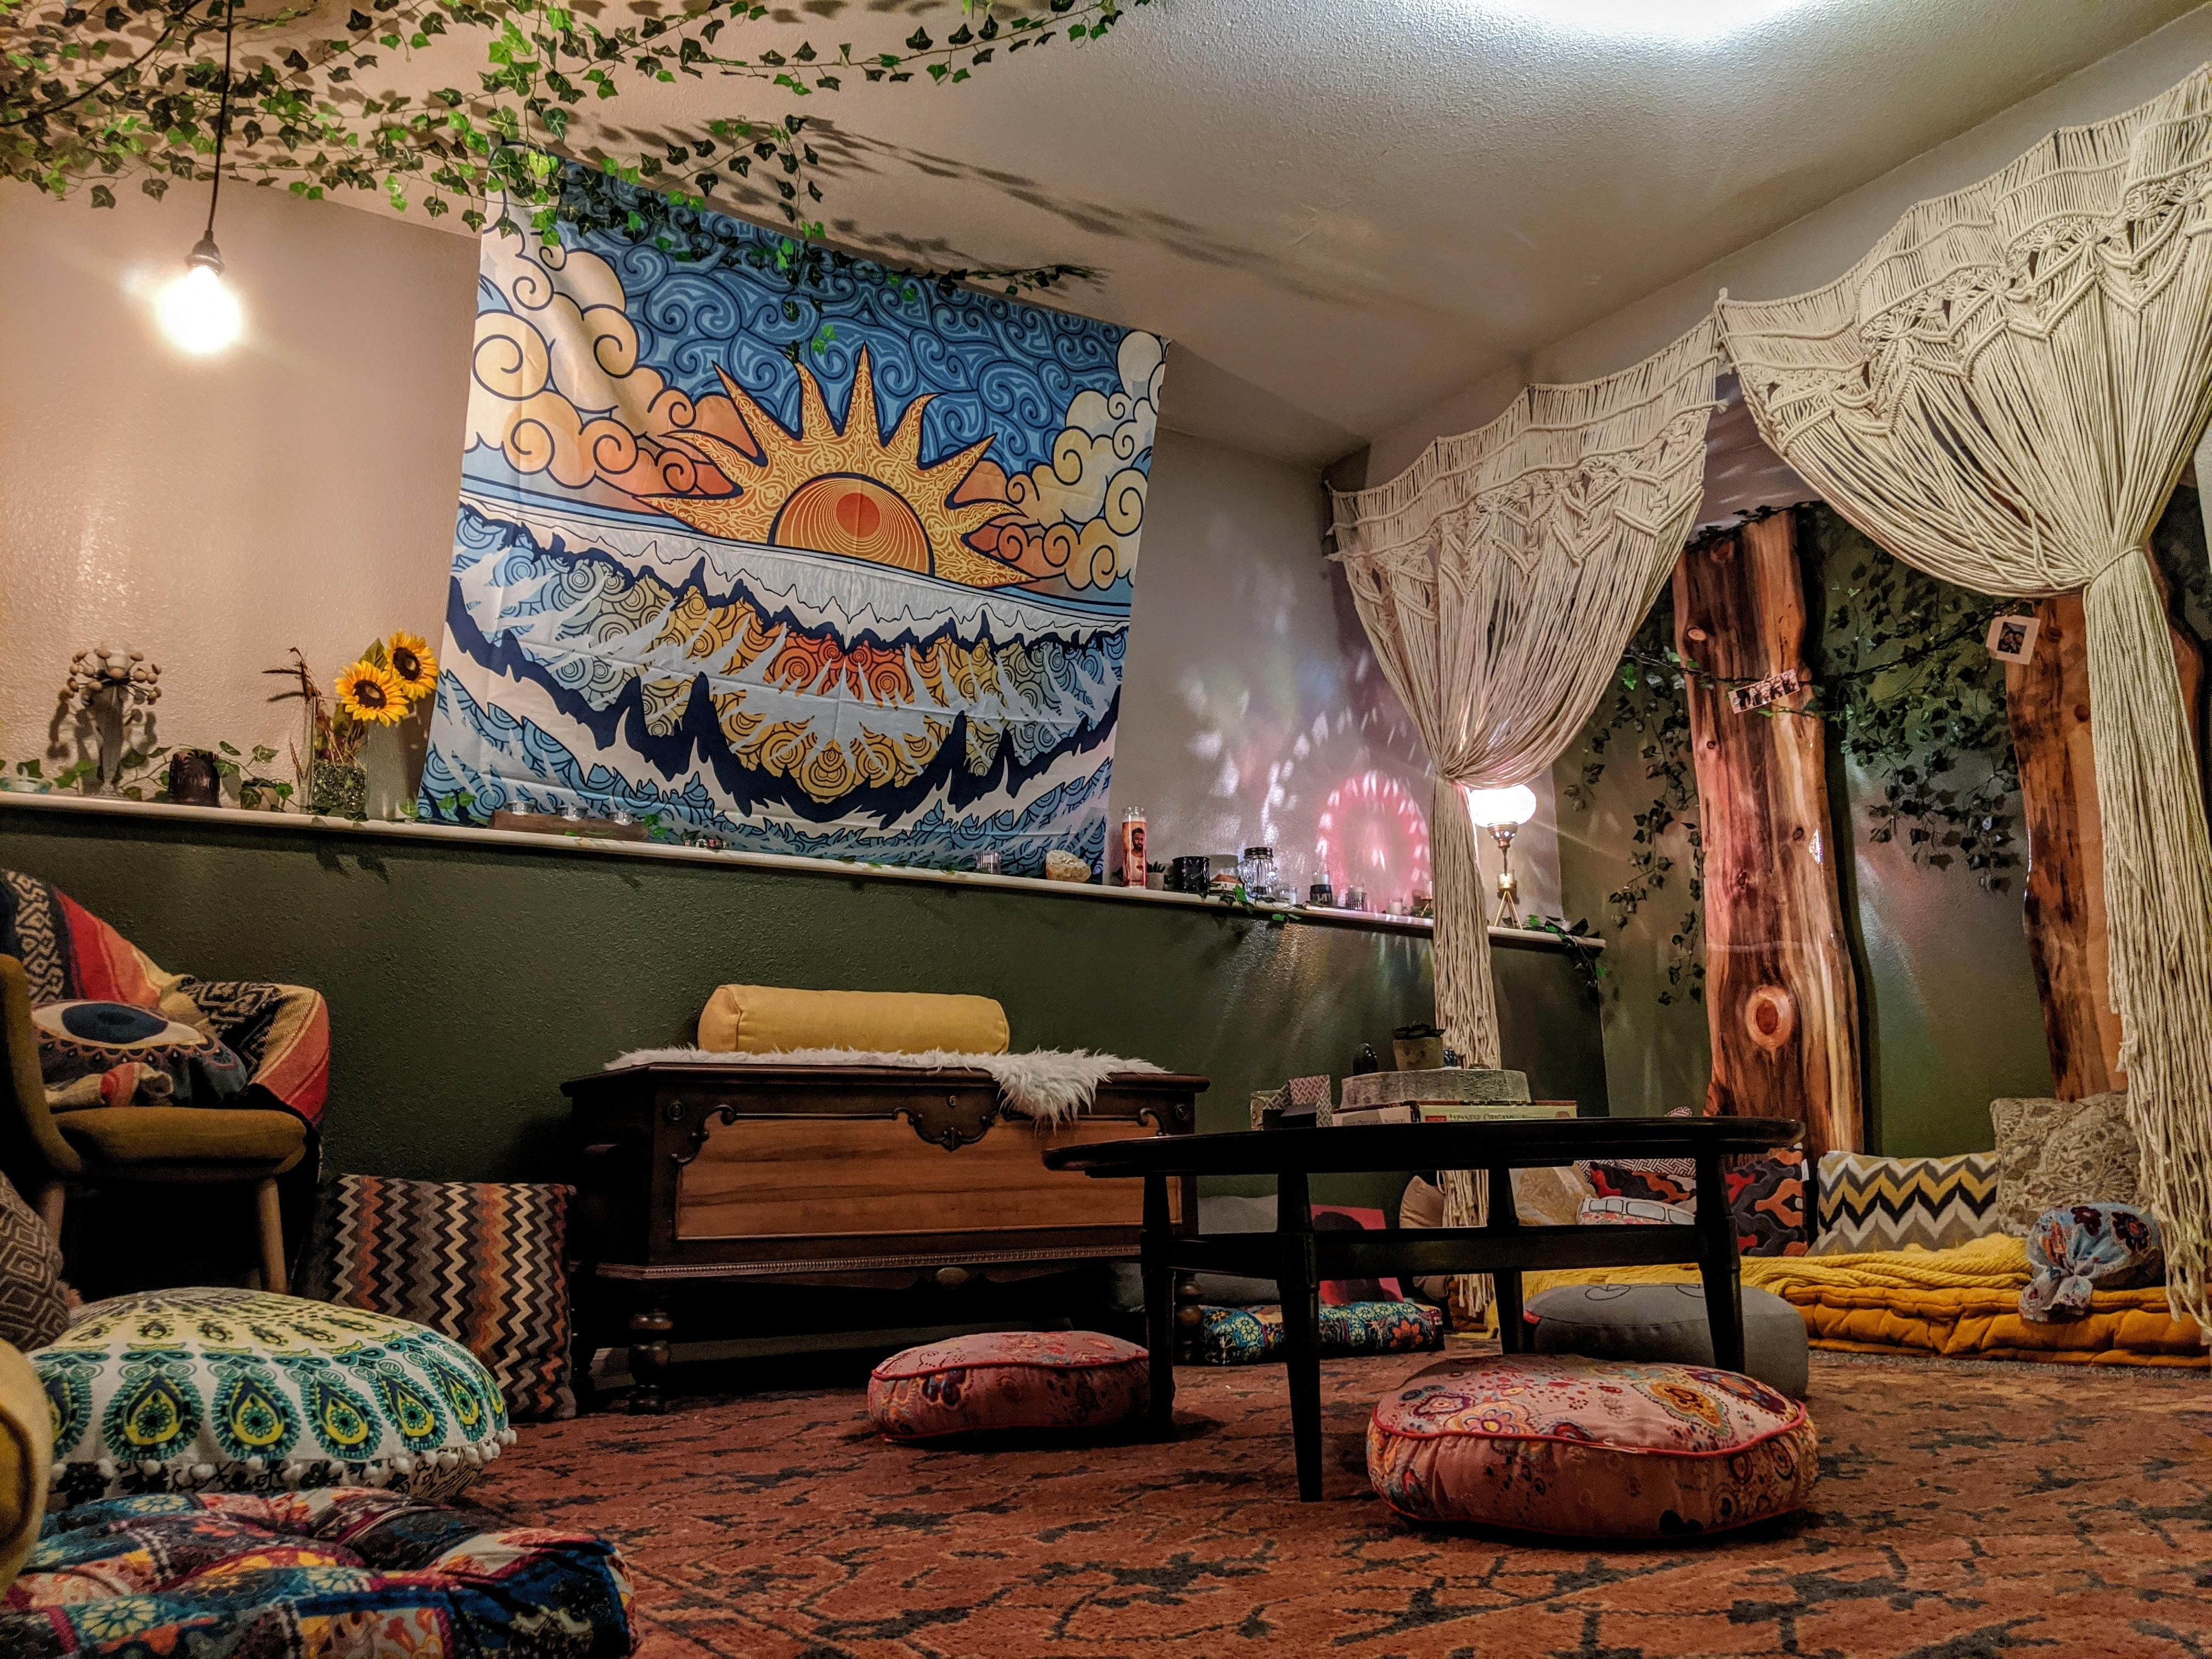 I M Pretty Happy With How Our Zen Den Turned Out 4032x3024 Check Out Desigedecors Com To Get More Inspir Zen Room Decor Meditation Room Decor Home Yoga Room